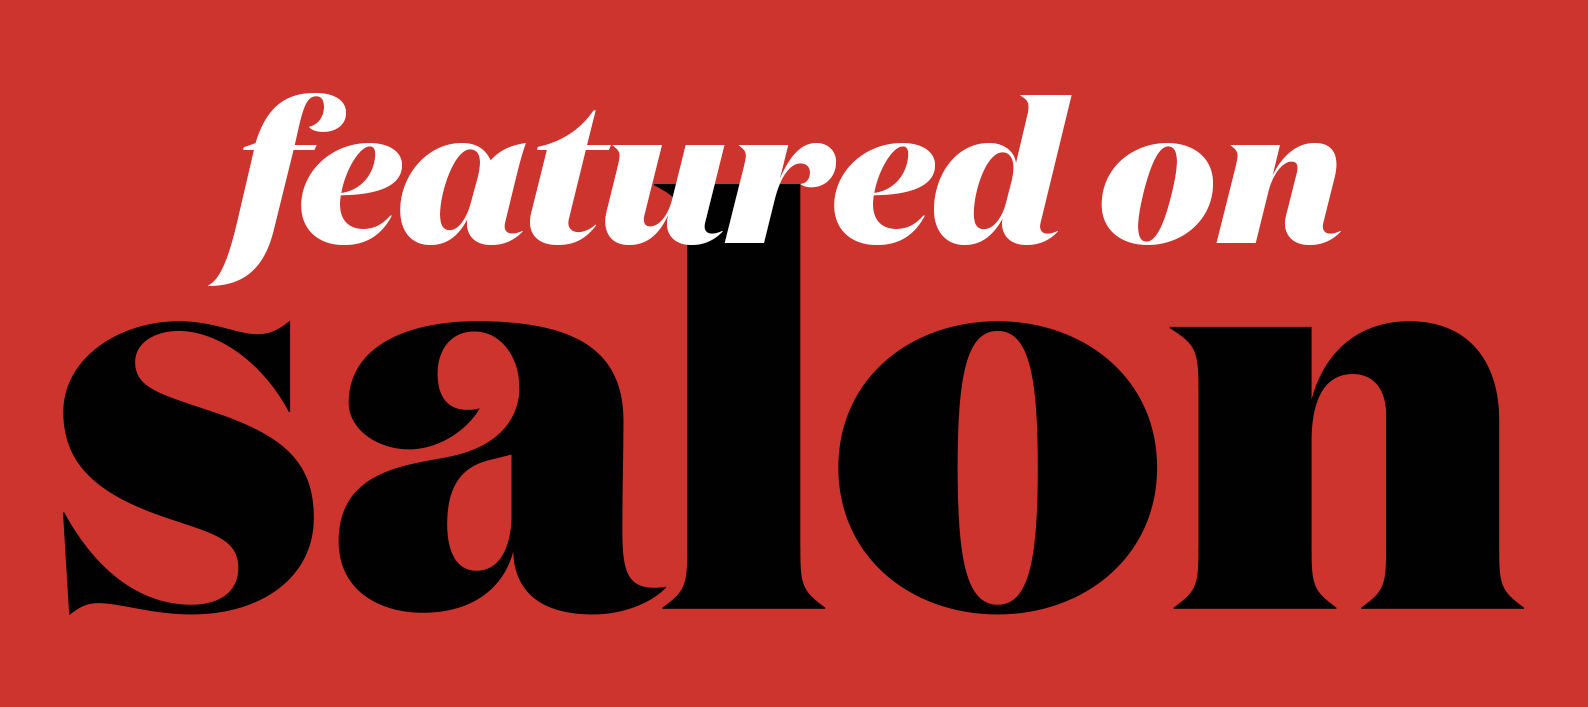 featured-on-salon1.png